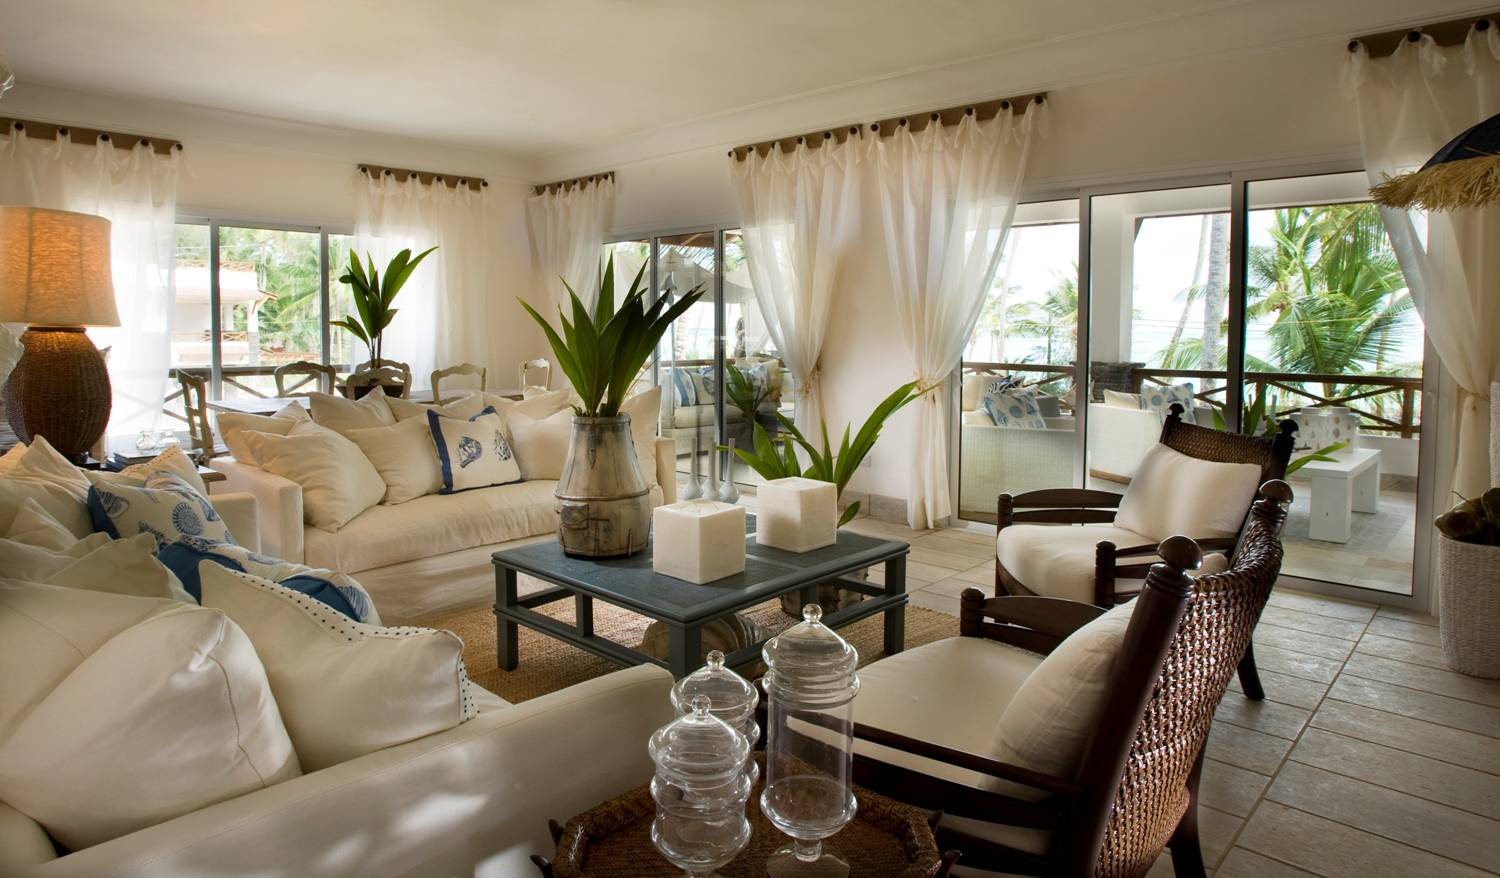 Furniture to decorate a living room